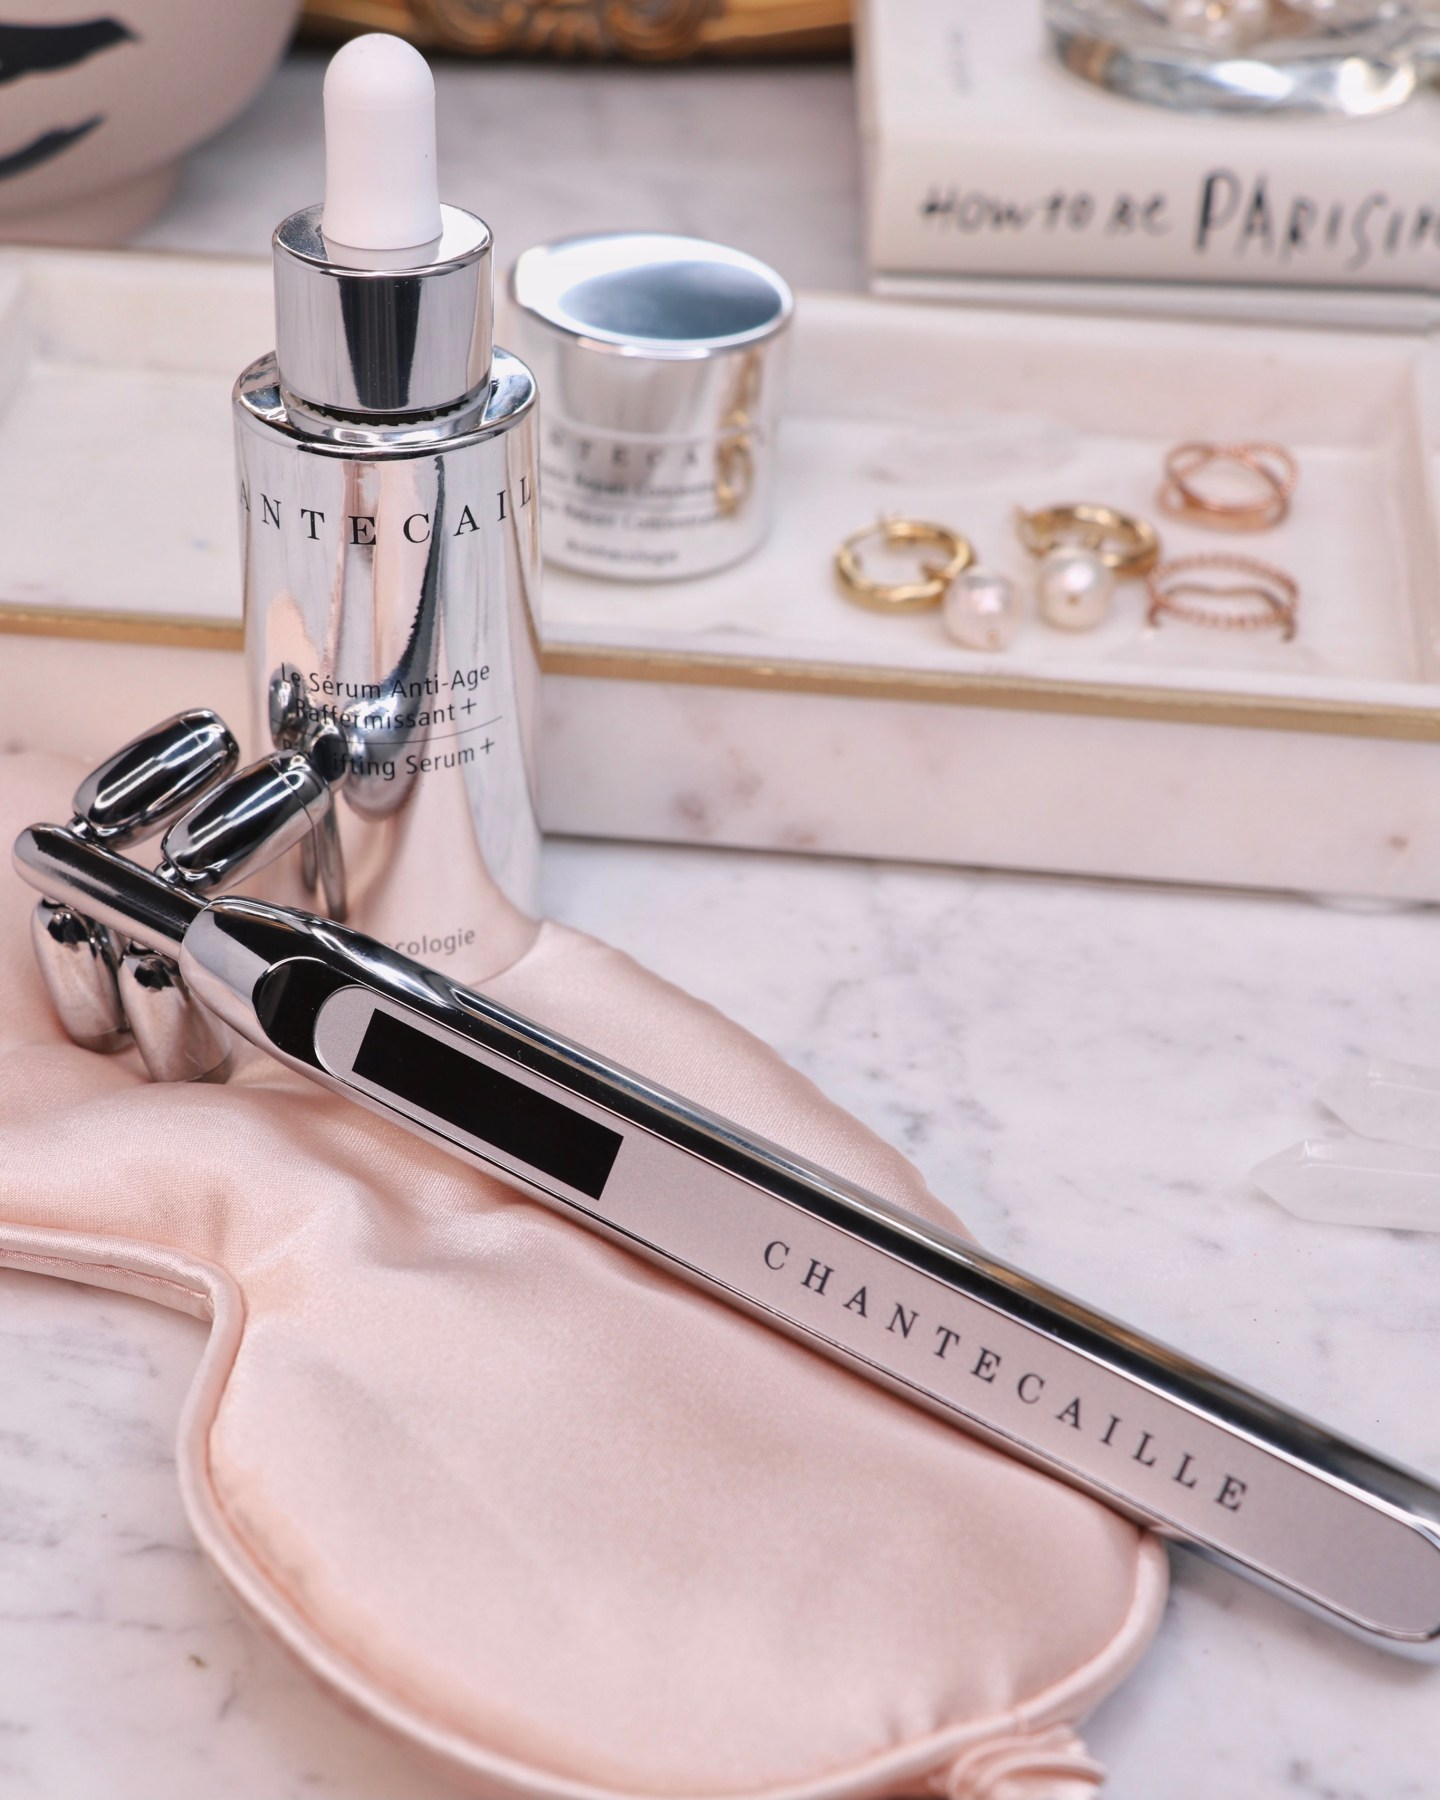 Chantecaille Bio Lifting +  Massage Tool